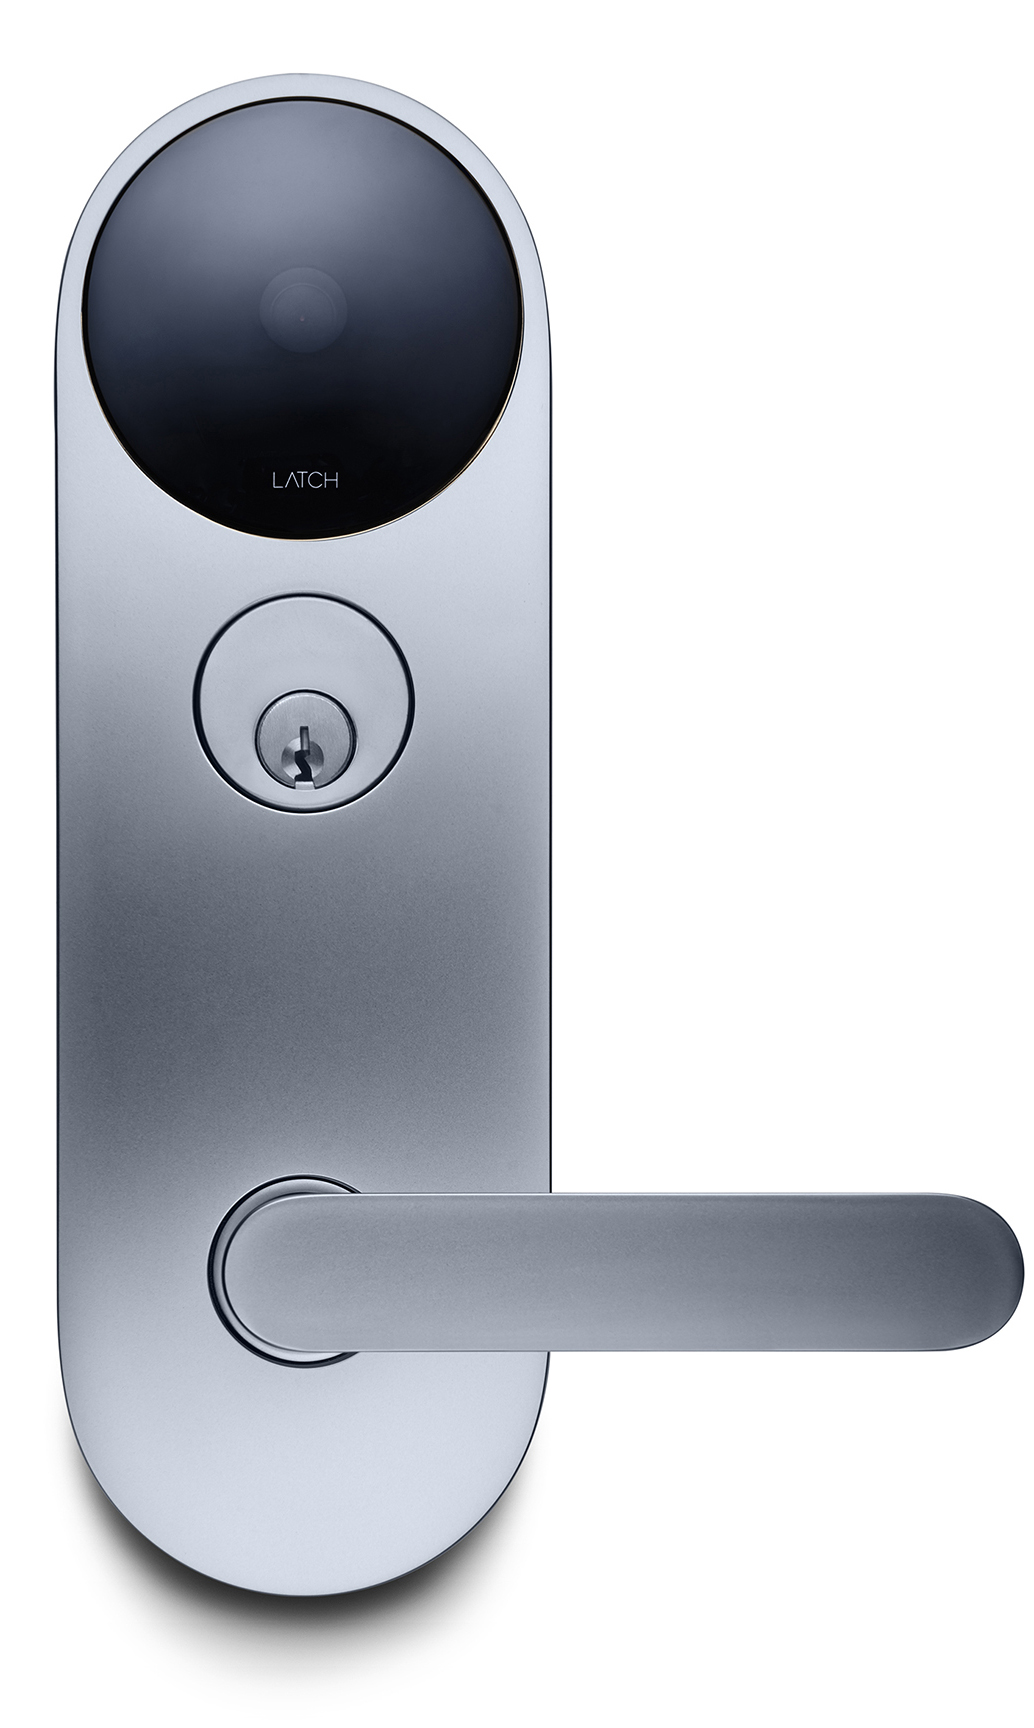 Products - Latch